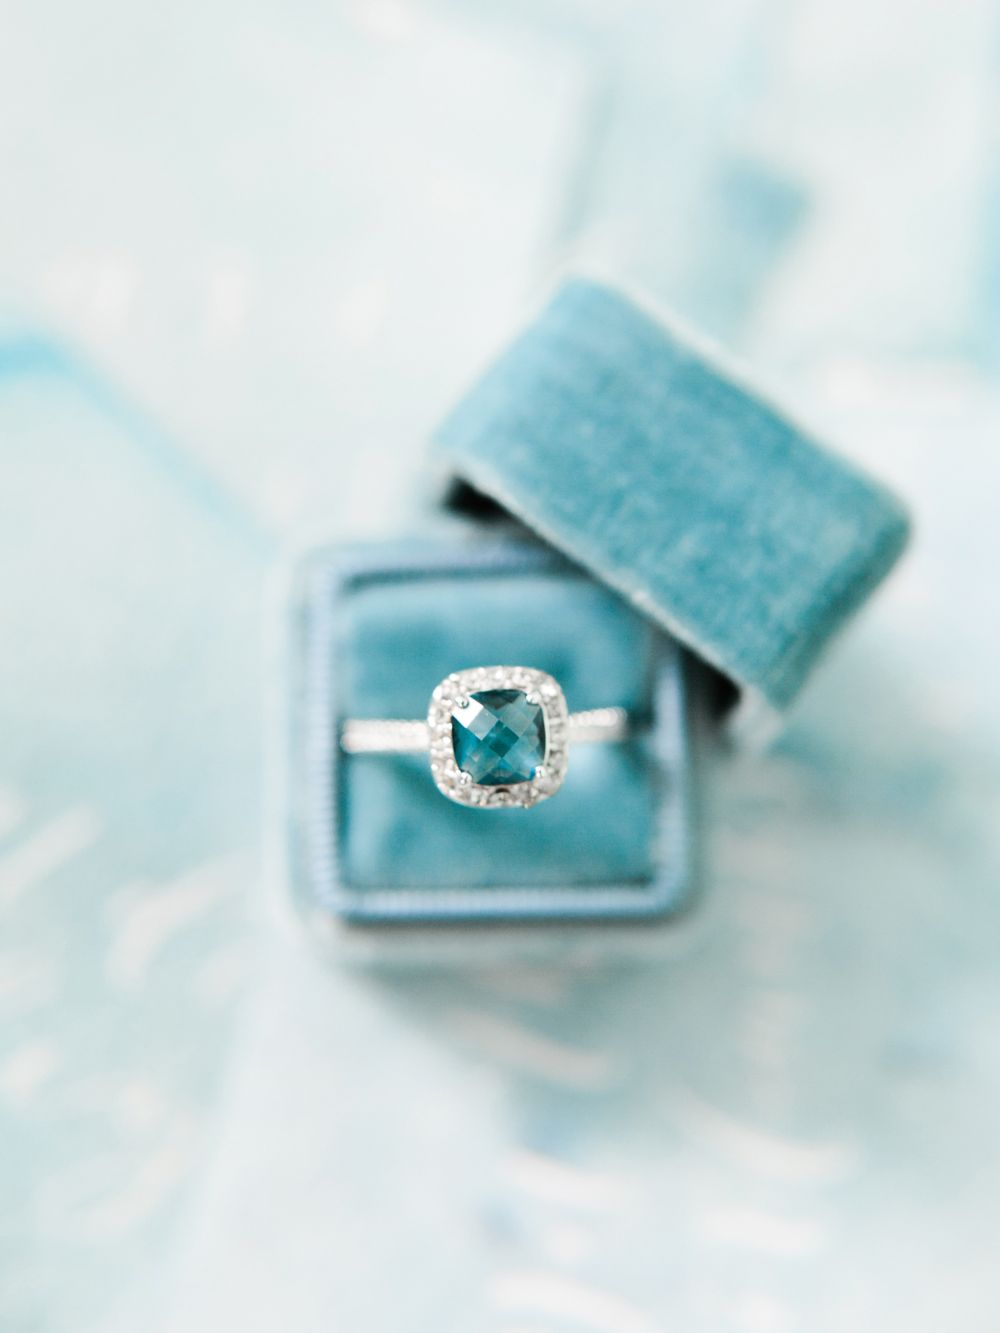 Engagement ring in a blue velvet ring box by The Mrs Box Image by